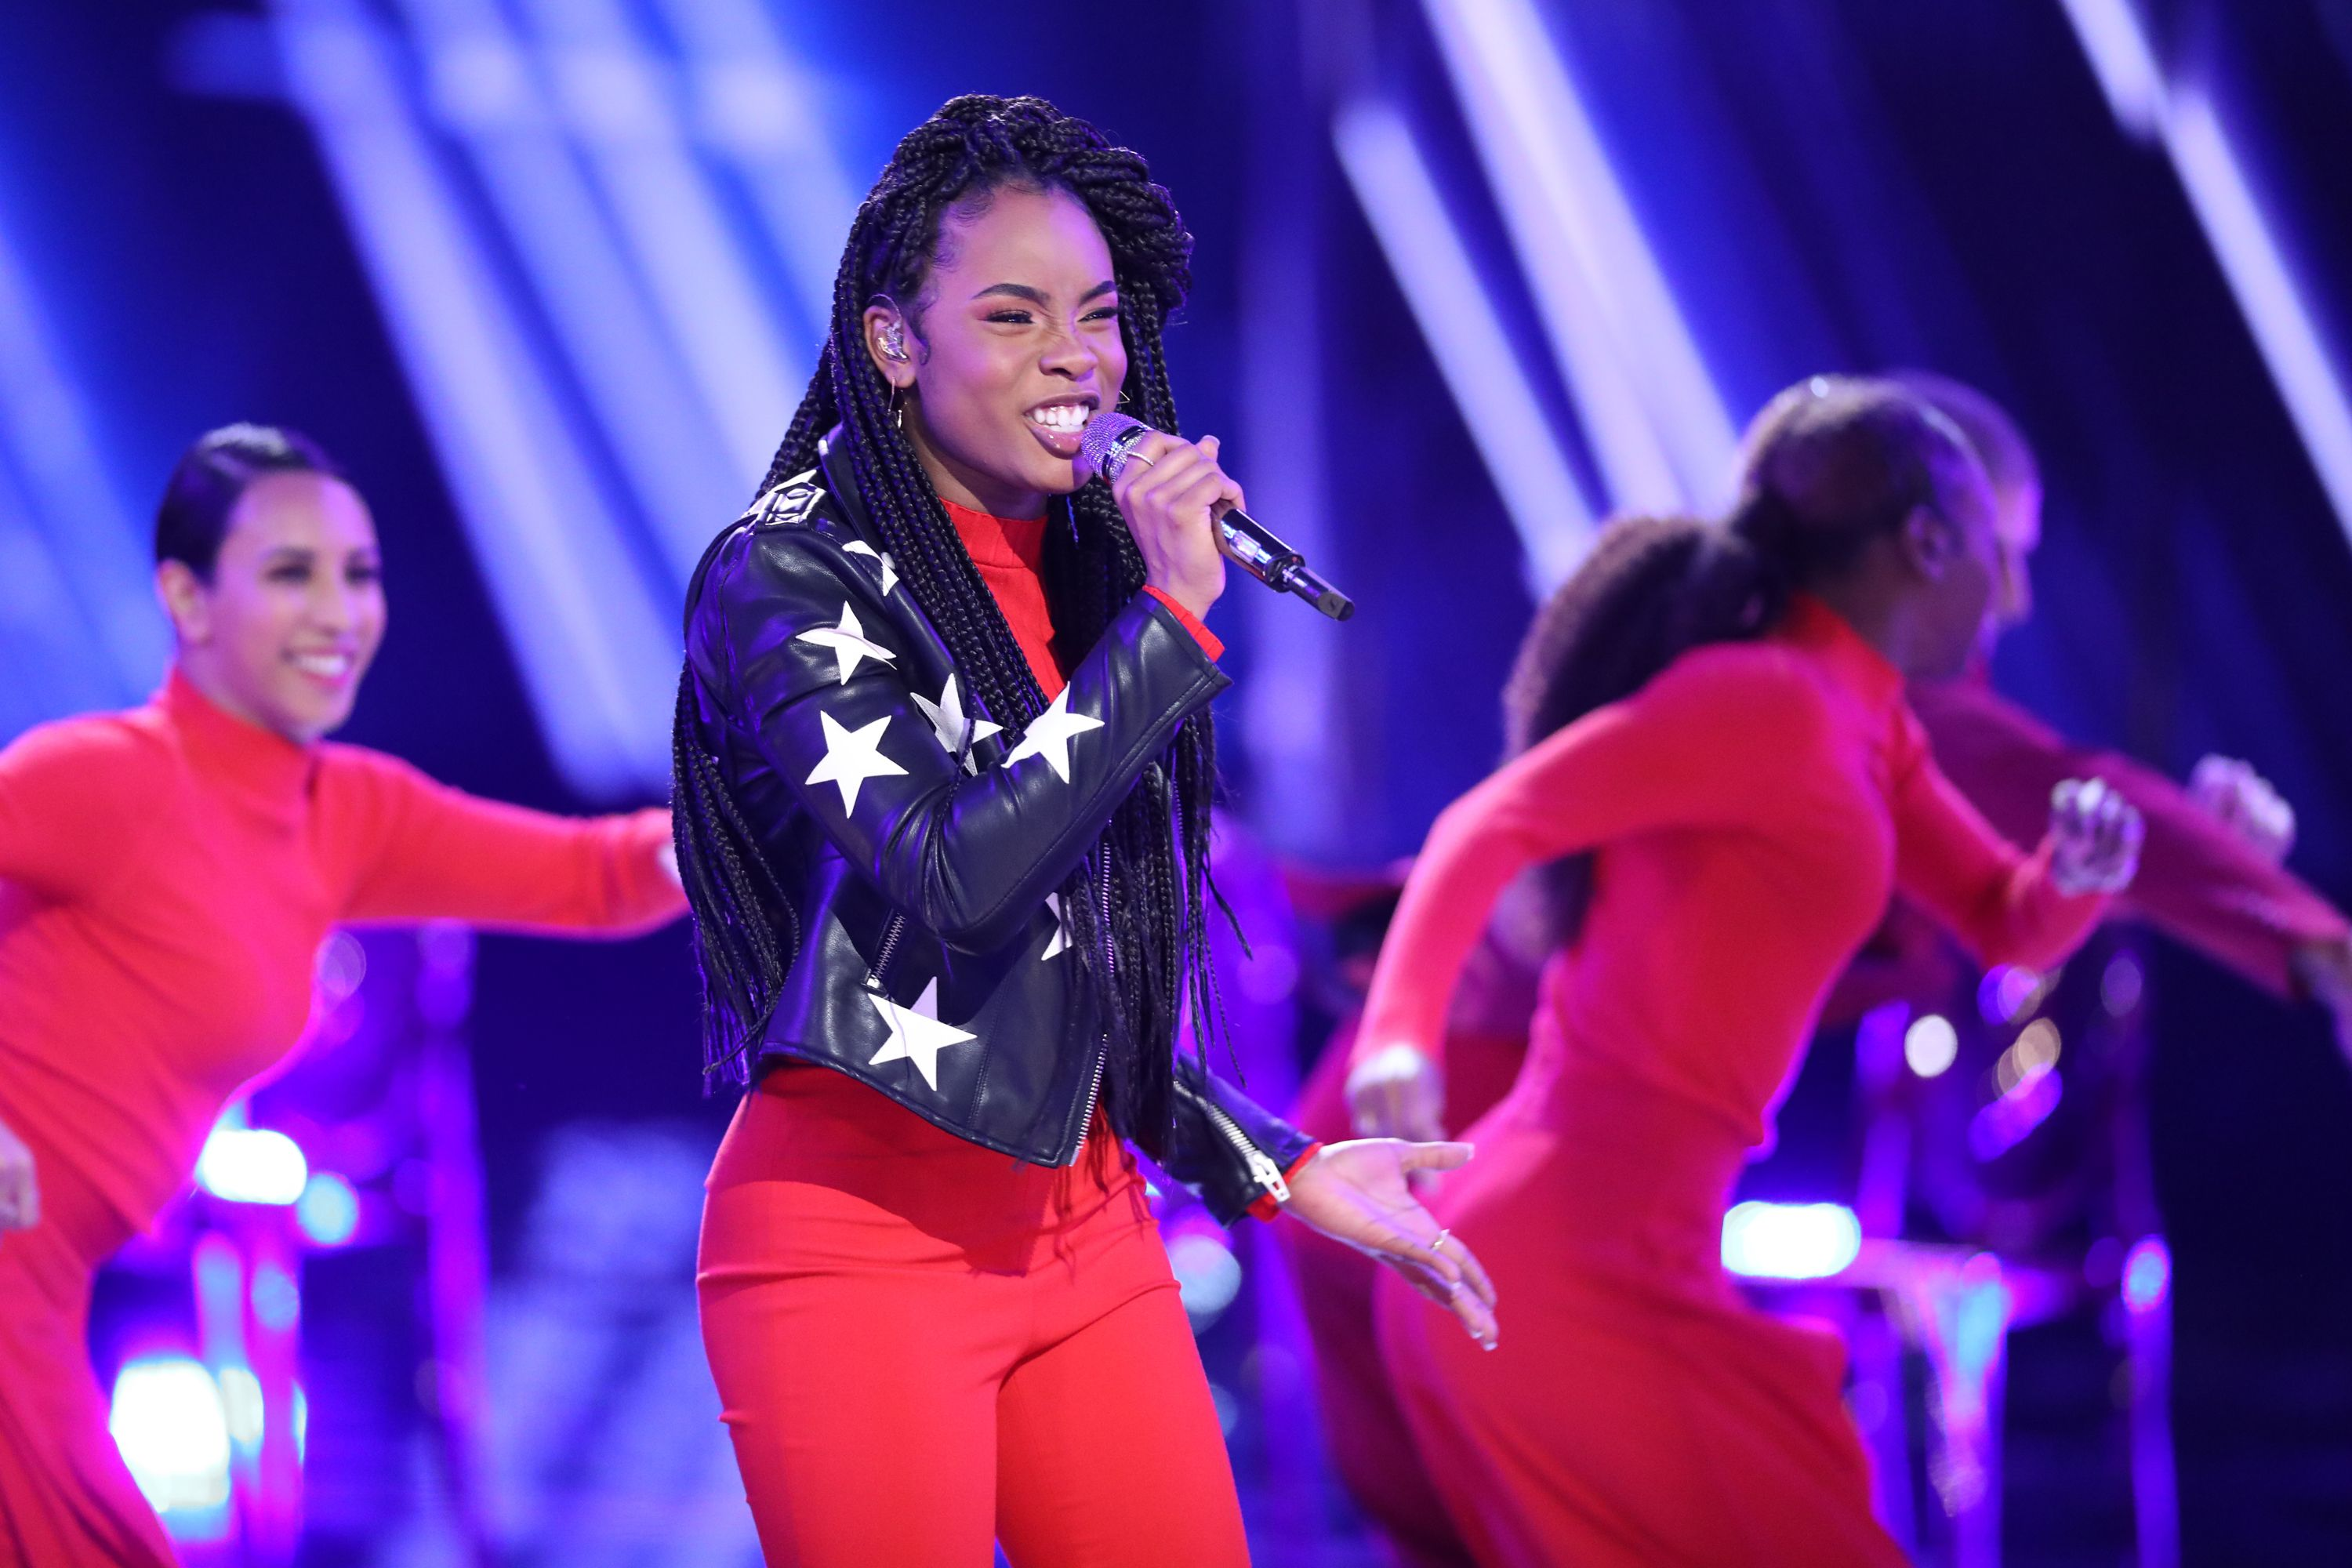 The Voice' Singer Kennedy Holmes Places 4th in Season 15